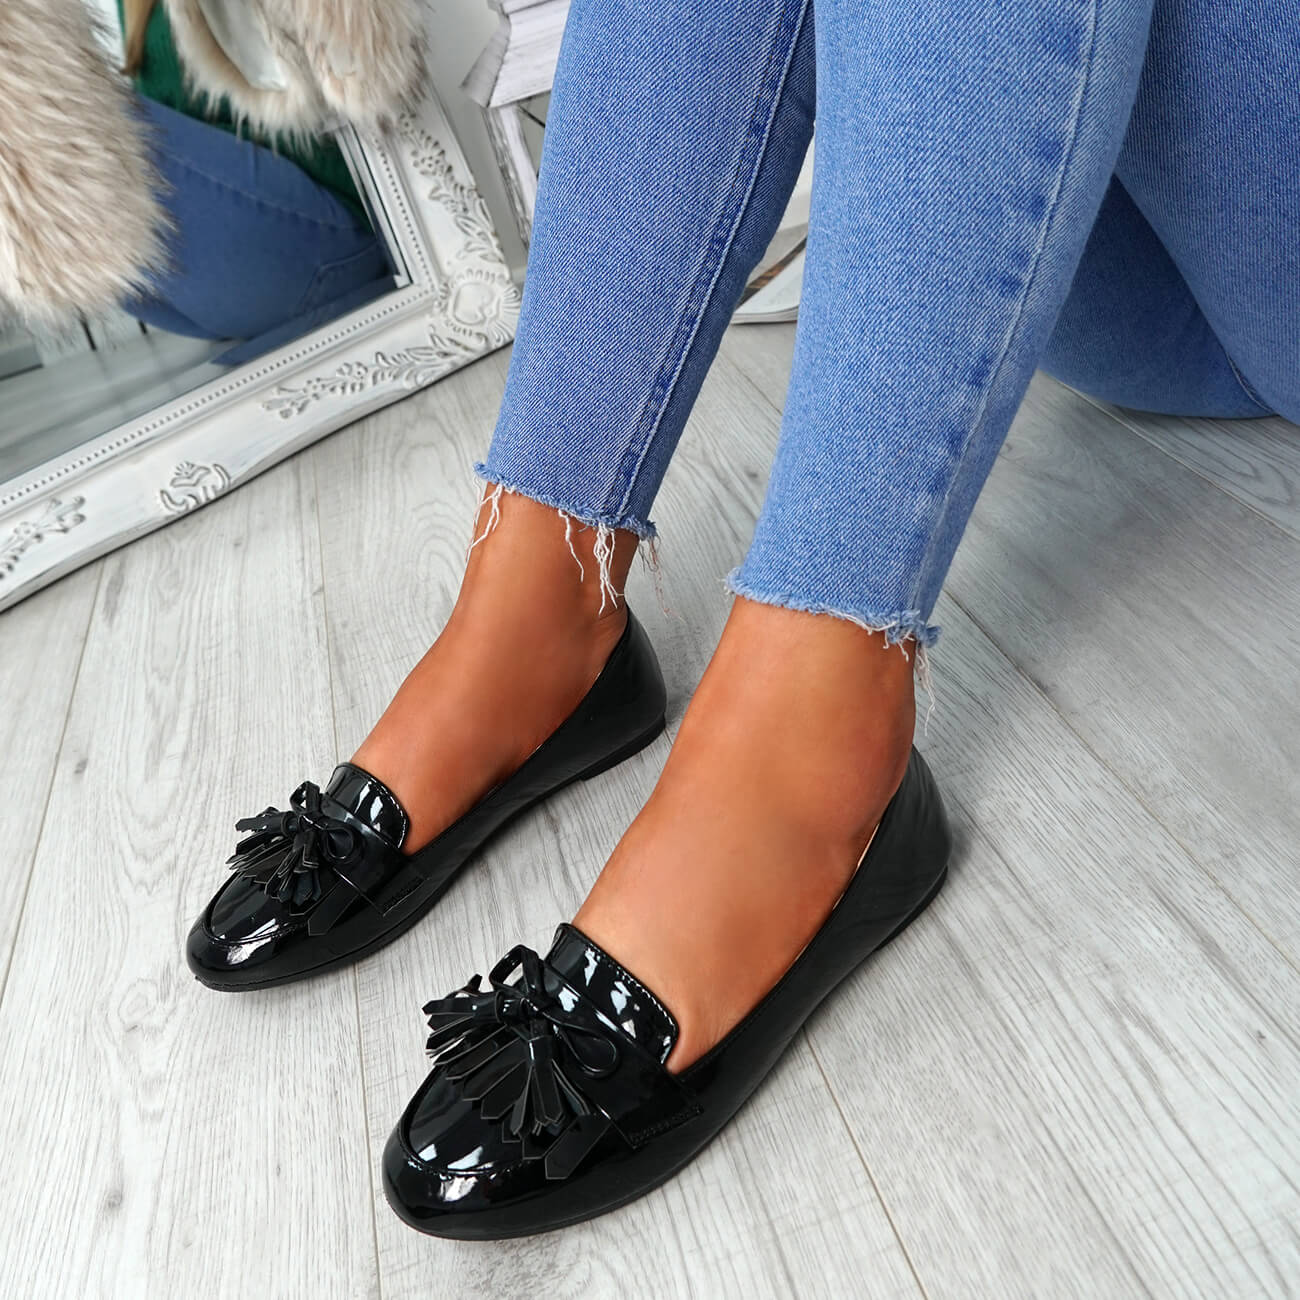 WOMENS-LADIES-FRINGE-BALLERINAS-SLIP-ON-FLAT-DOLLY-PUMPS-CASUAL-SMART-SHOES-SIZE thumbnail 8